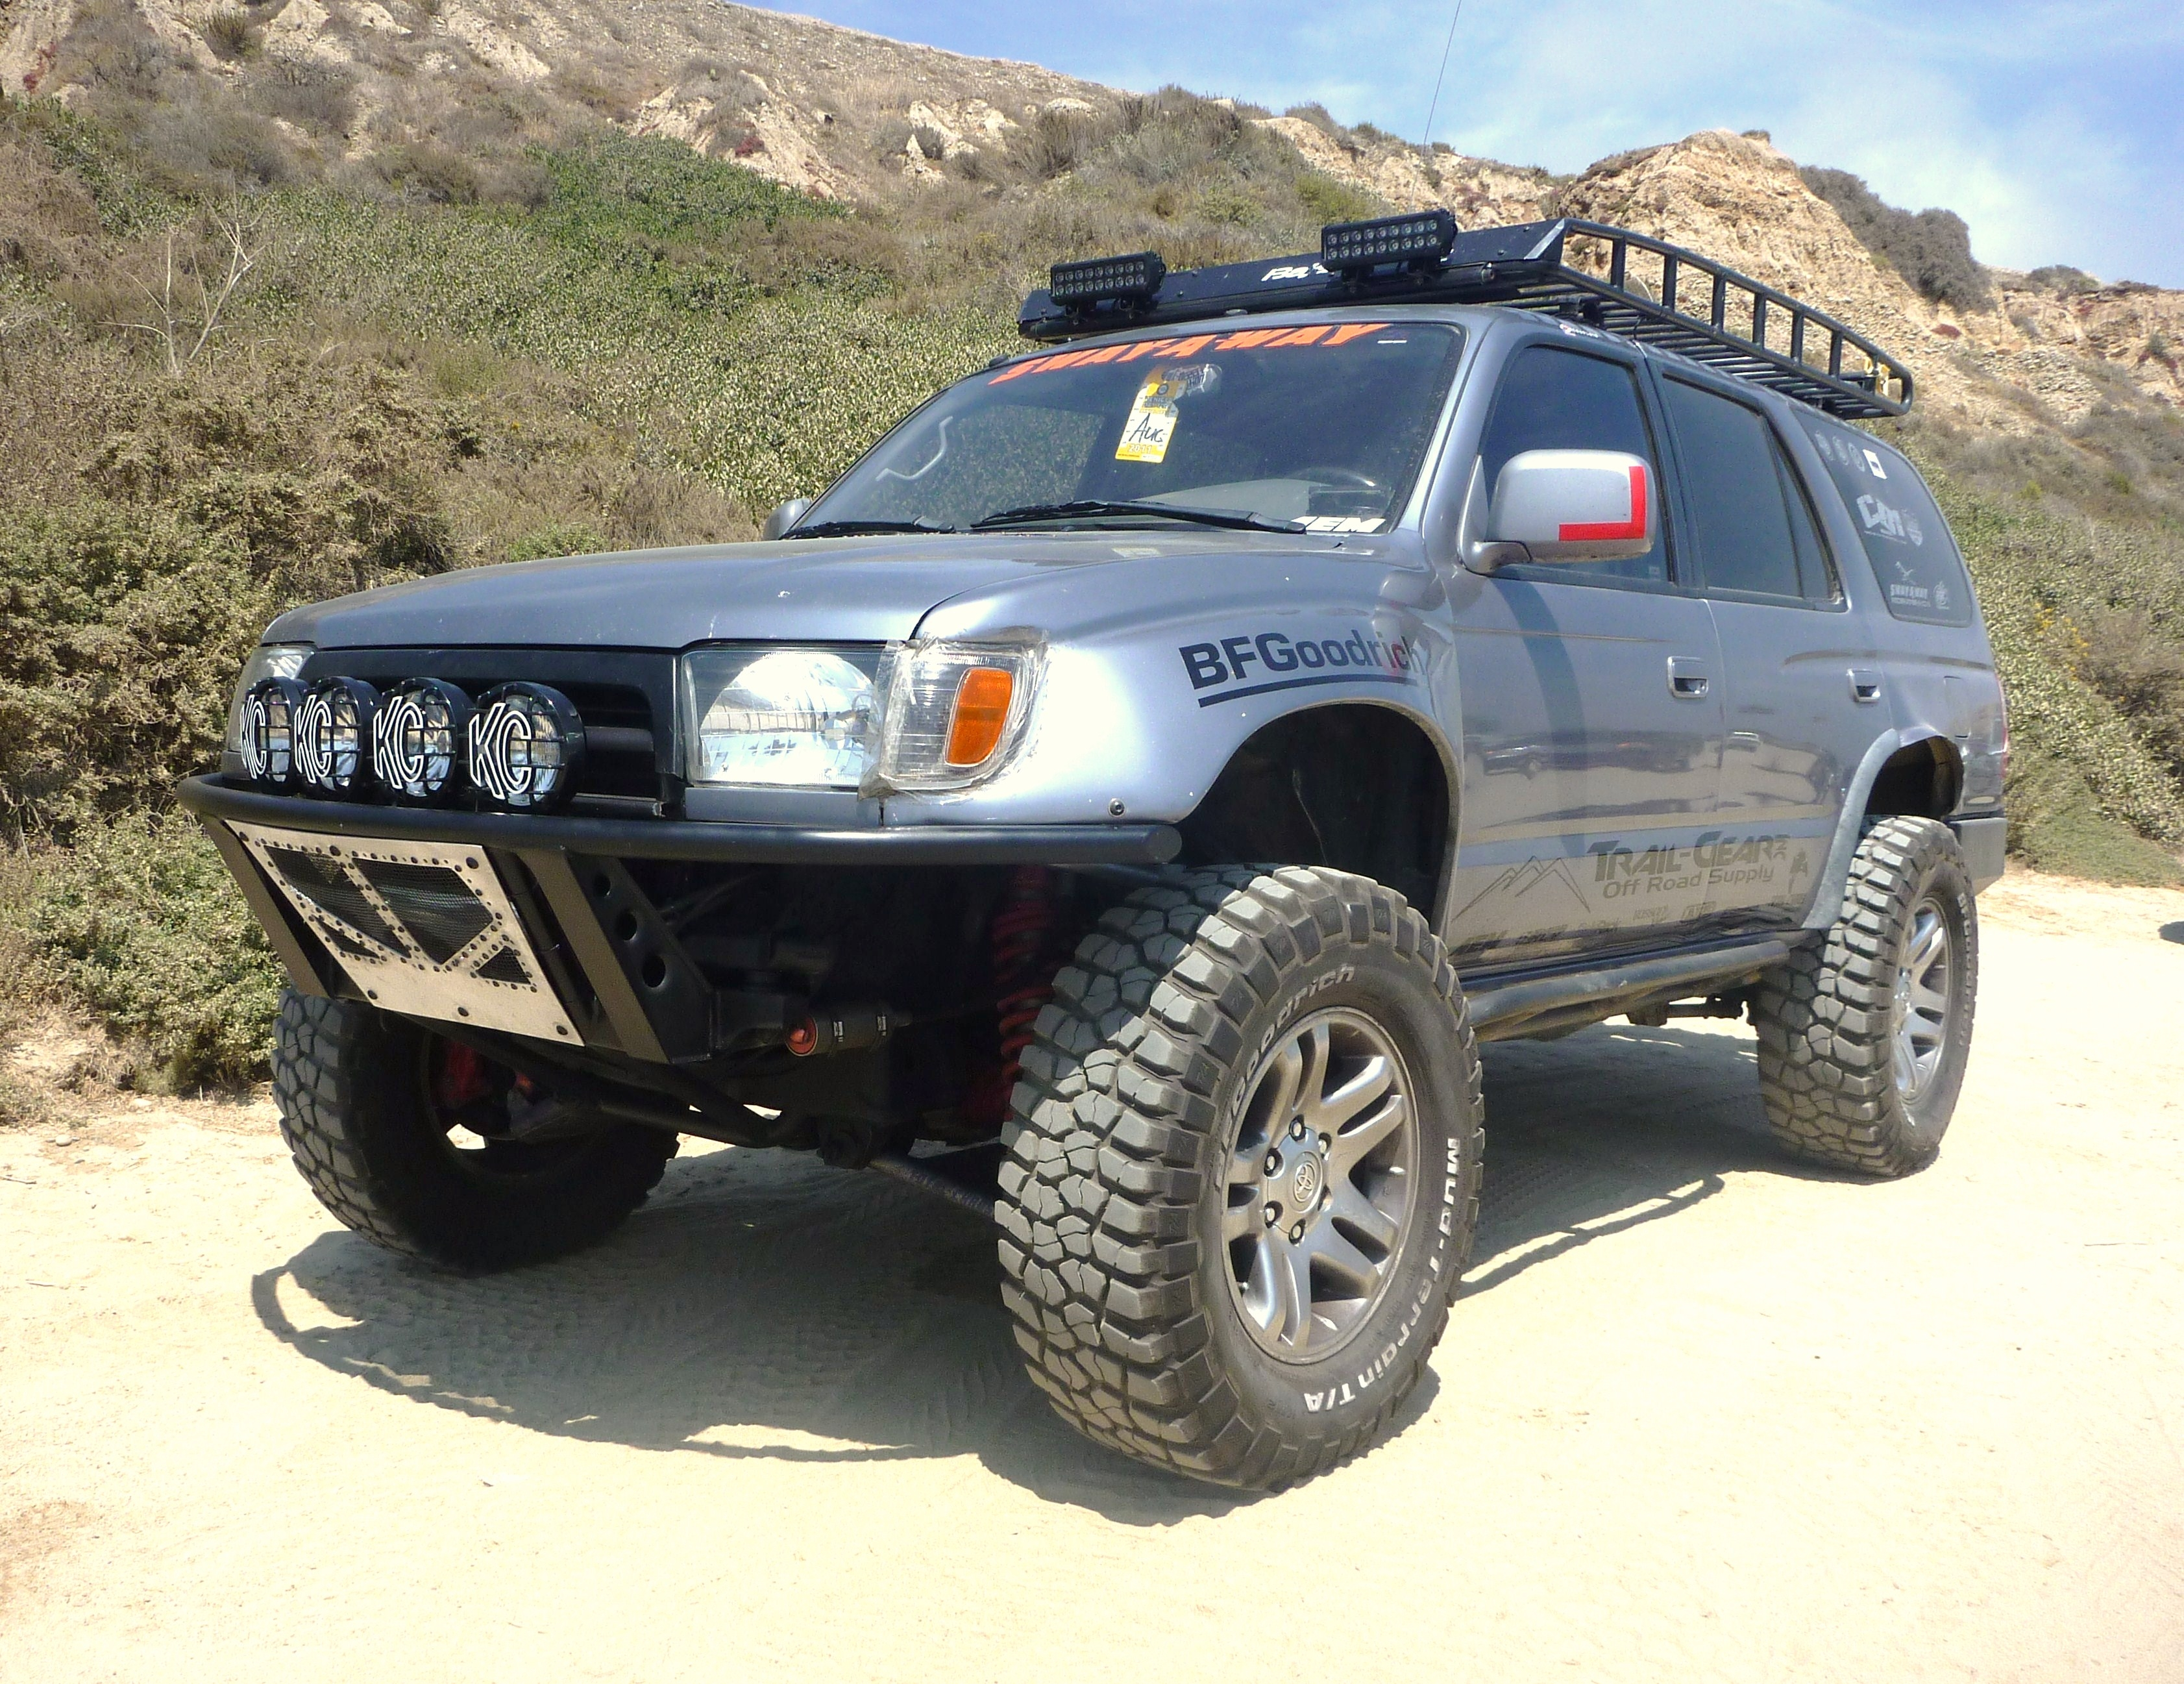 Chappysteve 1996 Toyota 4runner Specs Photos Modification Info At Brake Controller Installation Kit For A 1999 With Tow 33700724010 Original